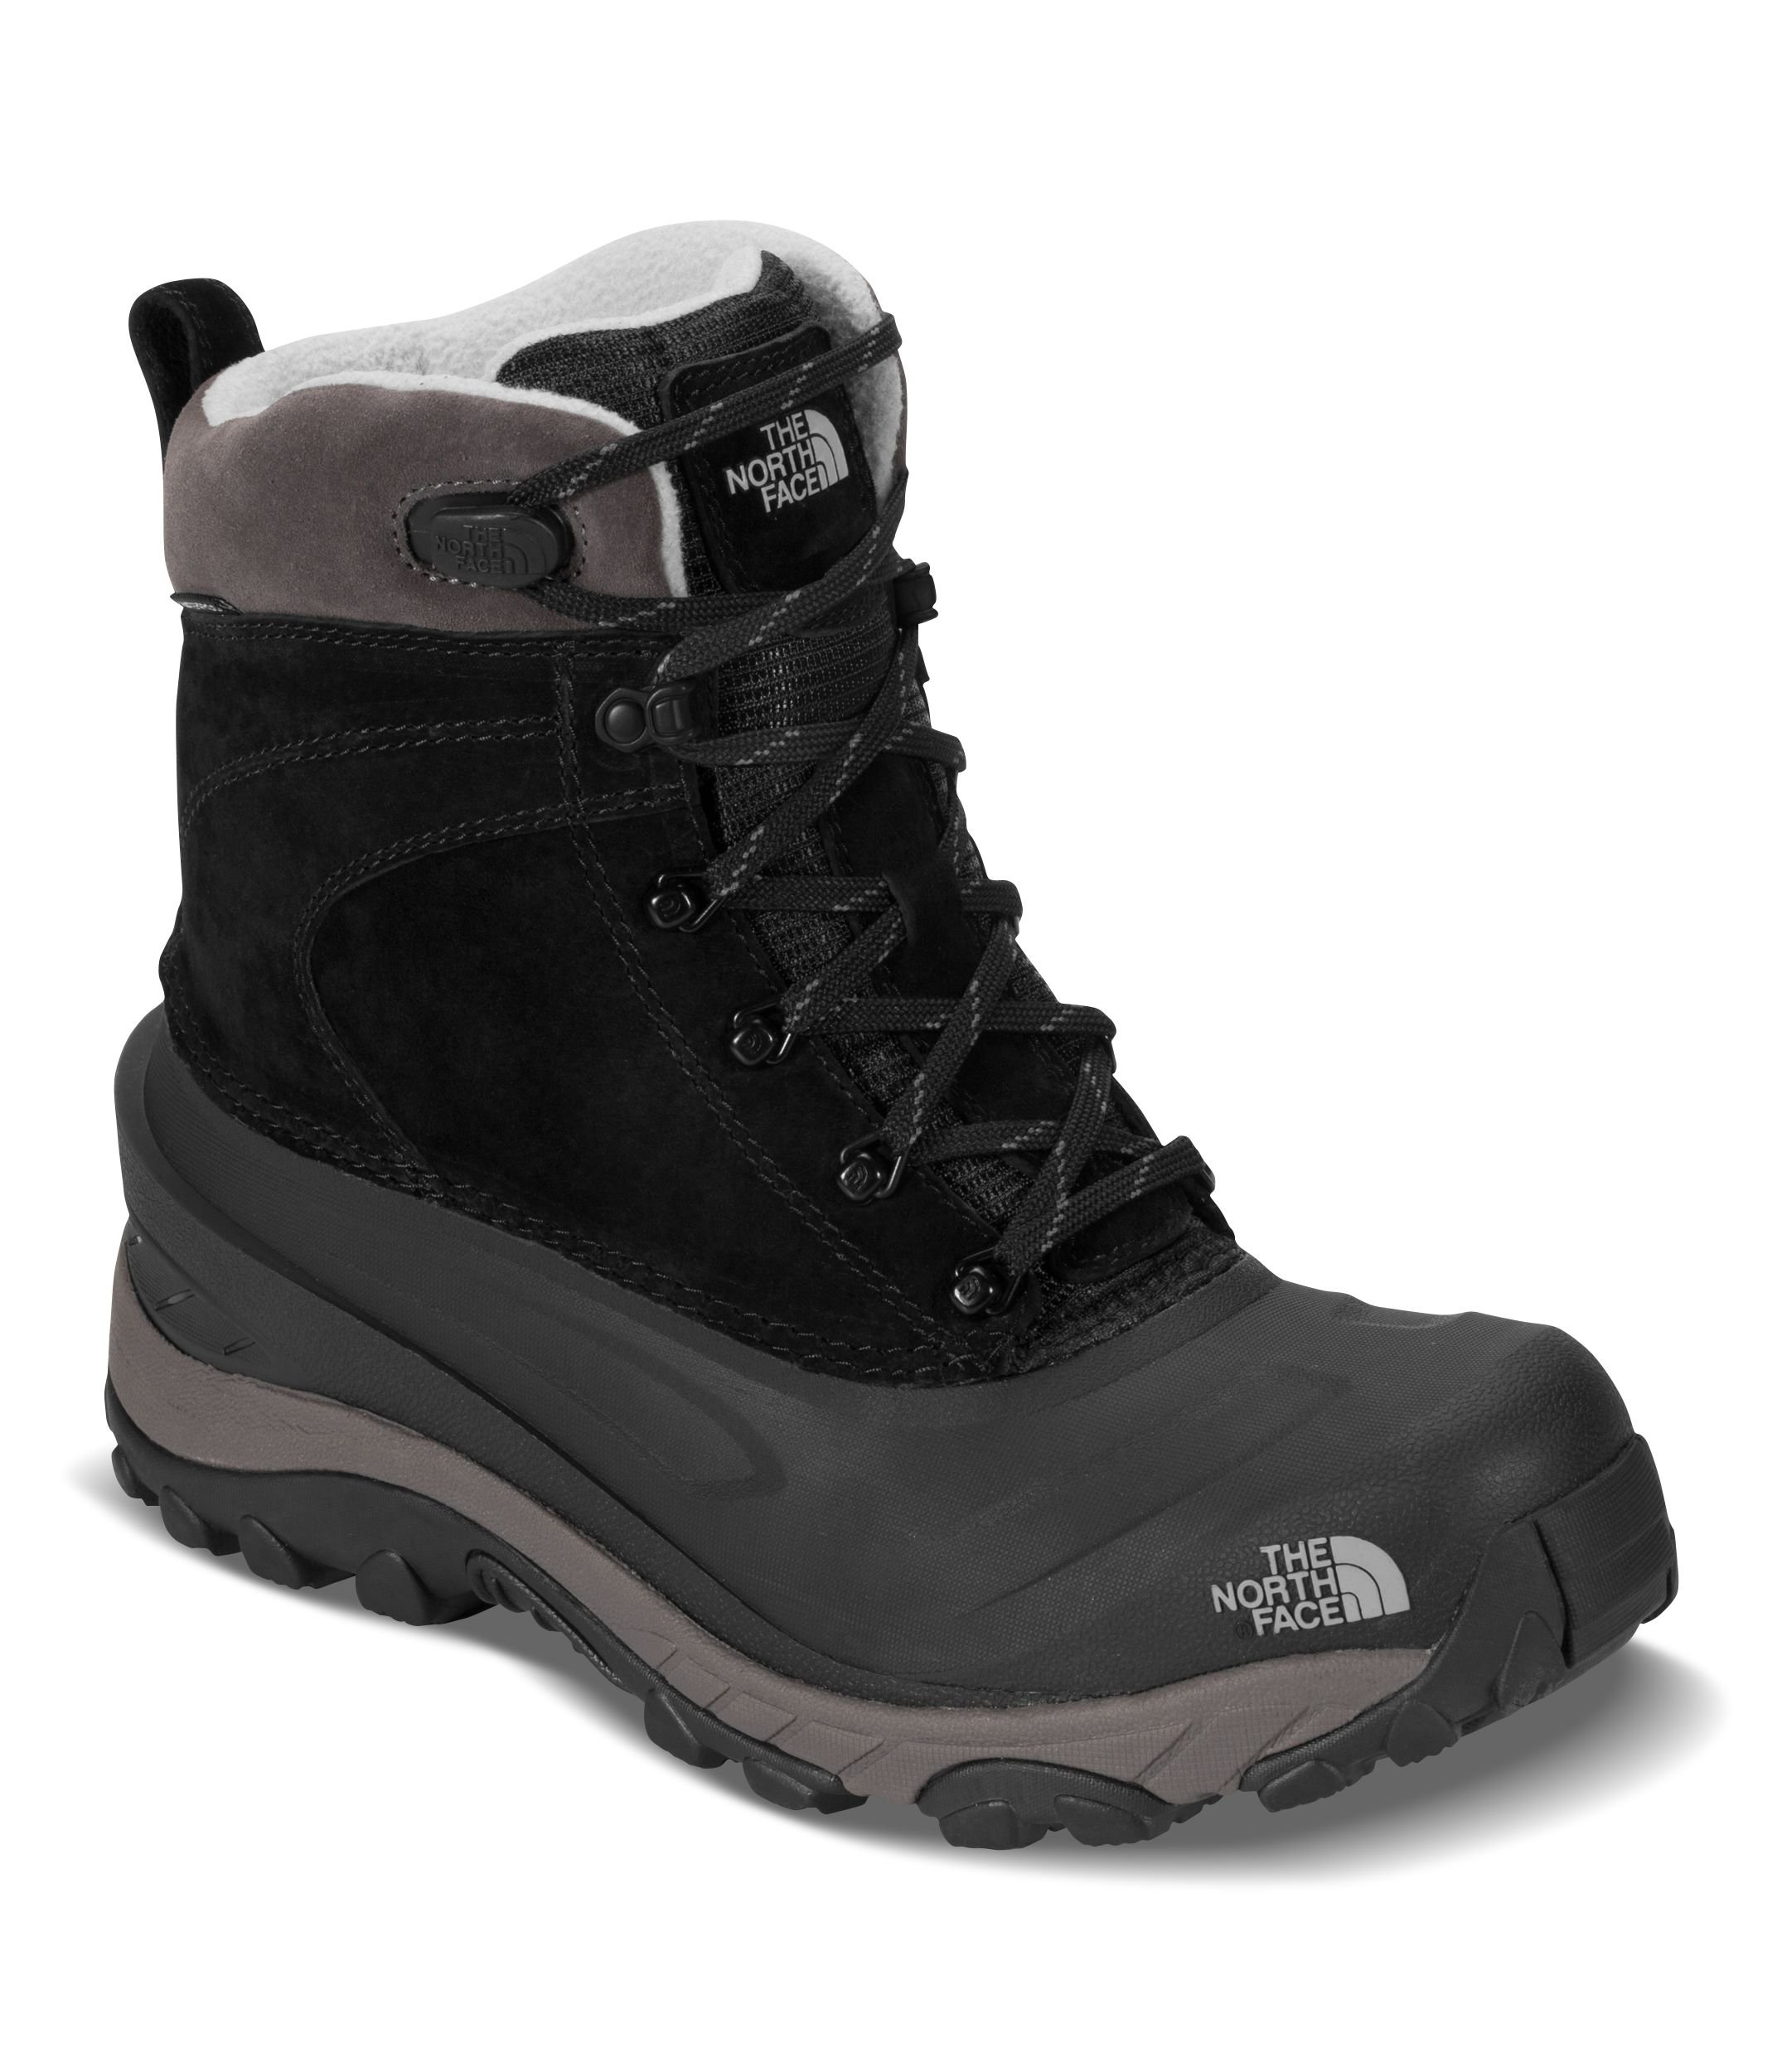 The North Face Men's Chilkat III - TNF Black & Dark Gull Grey - 11 by The North Face